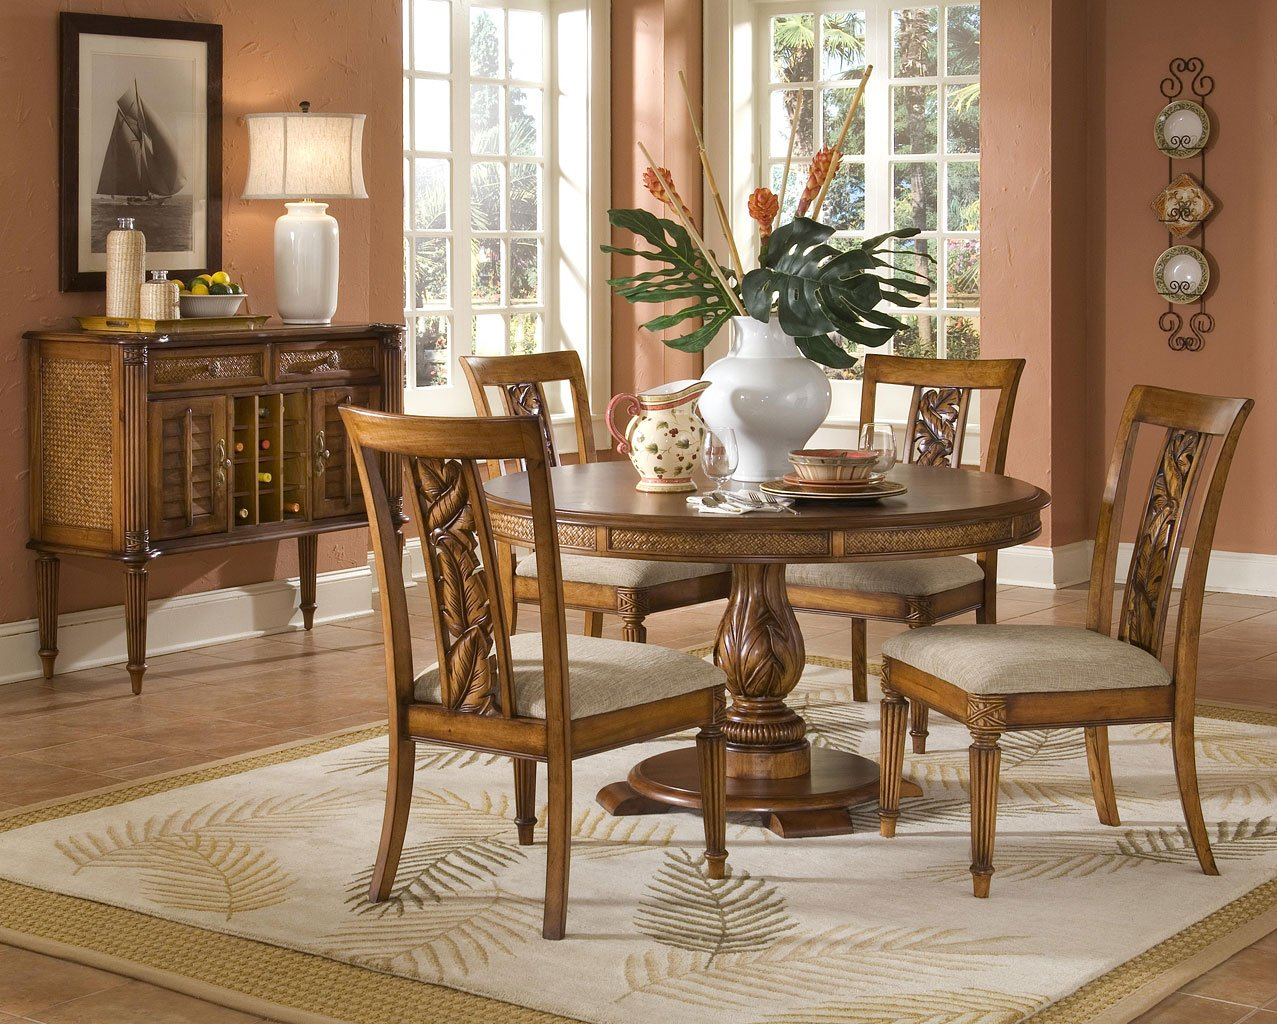 Superieur Palm Court Round Dining Room Set